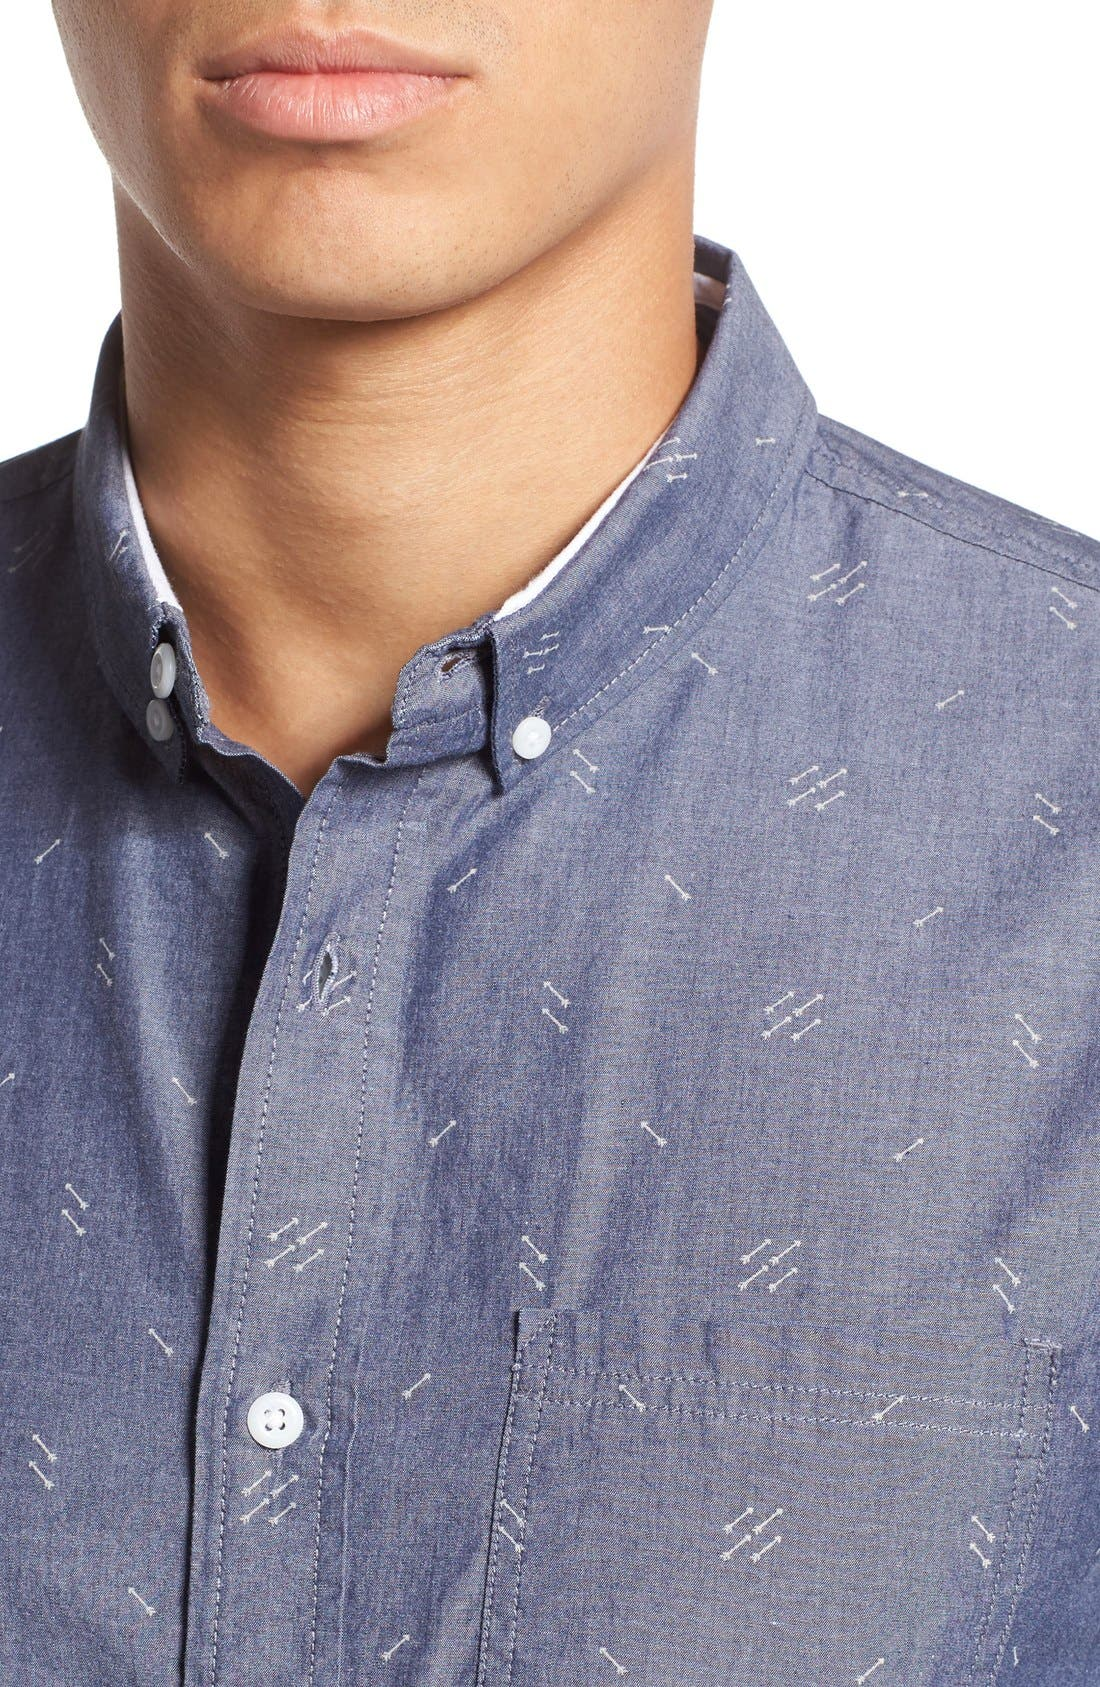 'Baker' Slim Fit Arrow Print Woven Shirt,                             Alternate thumbnail 4, color,                             Navy Iris Arrows Print